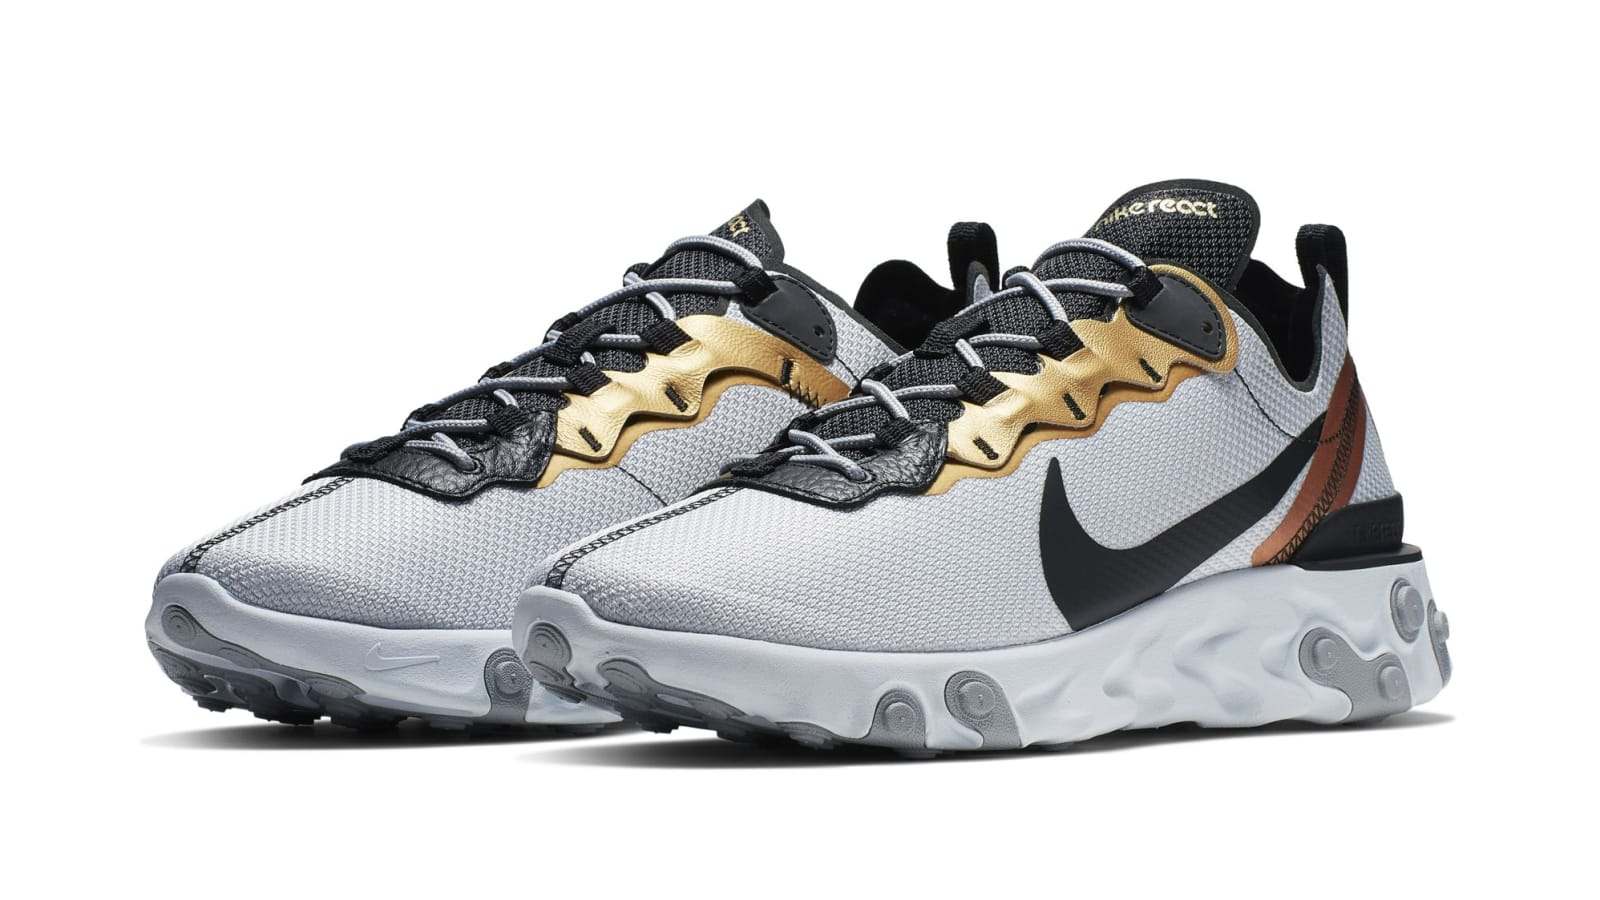 The pair Nike React Element 87 carried by Drake on the